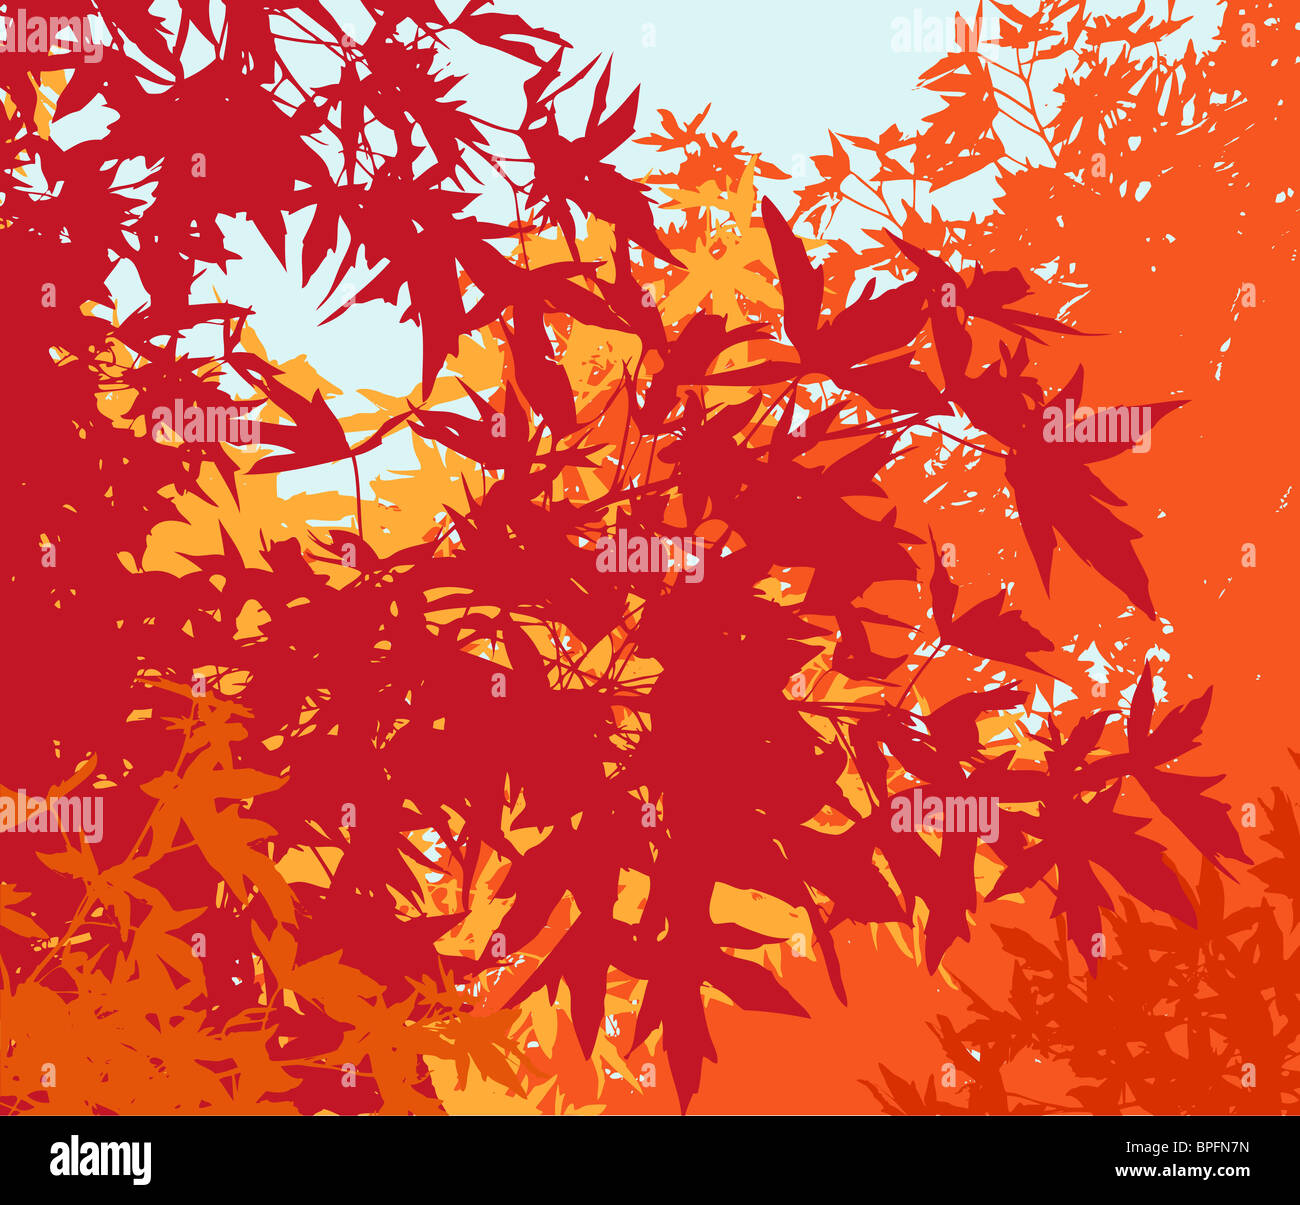 Red Leaves Tree Painting